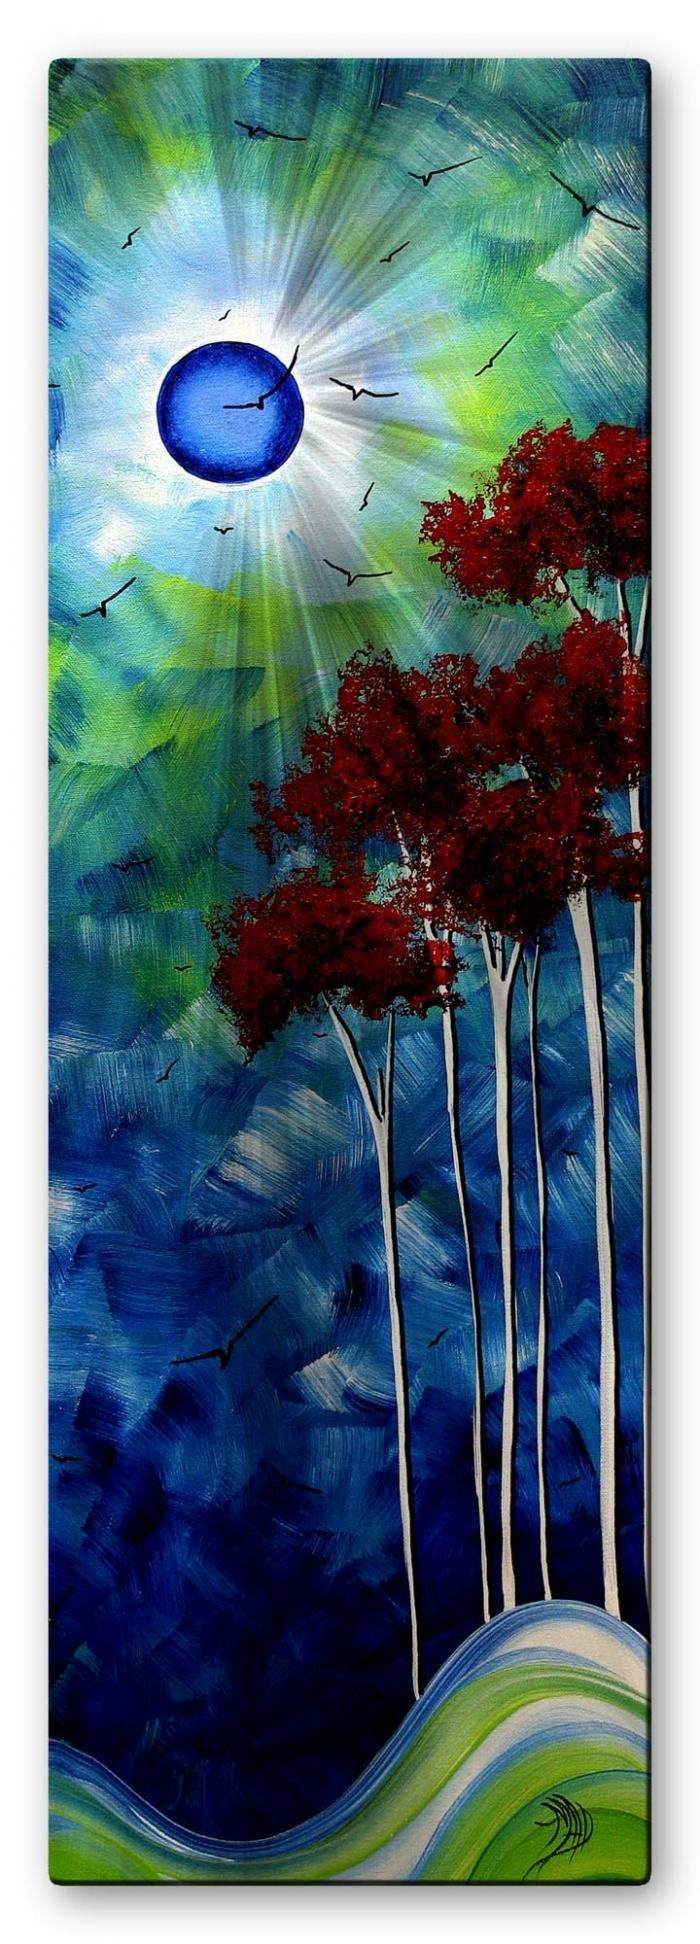 65 Best Artist- Megan Duncanson Images On Pinterest | Abstract Art with regard to Megan Duncanson Metal Wall Art